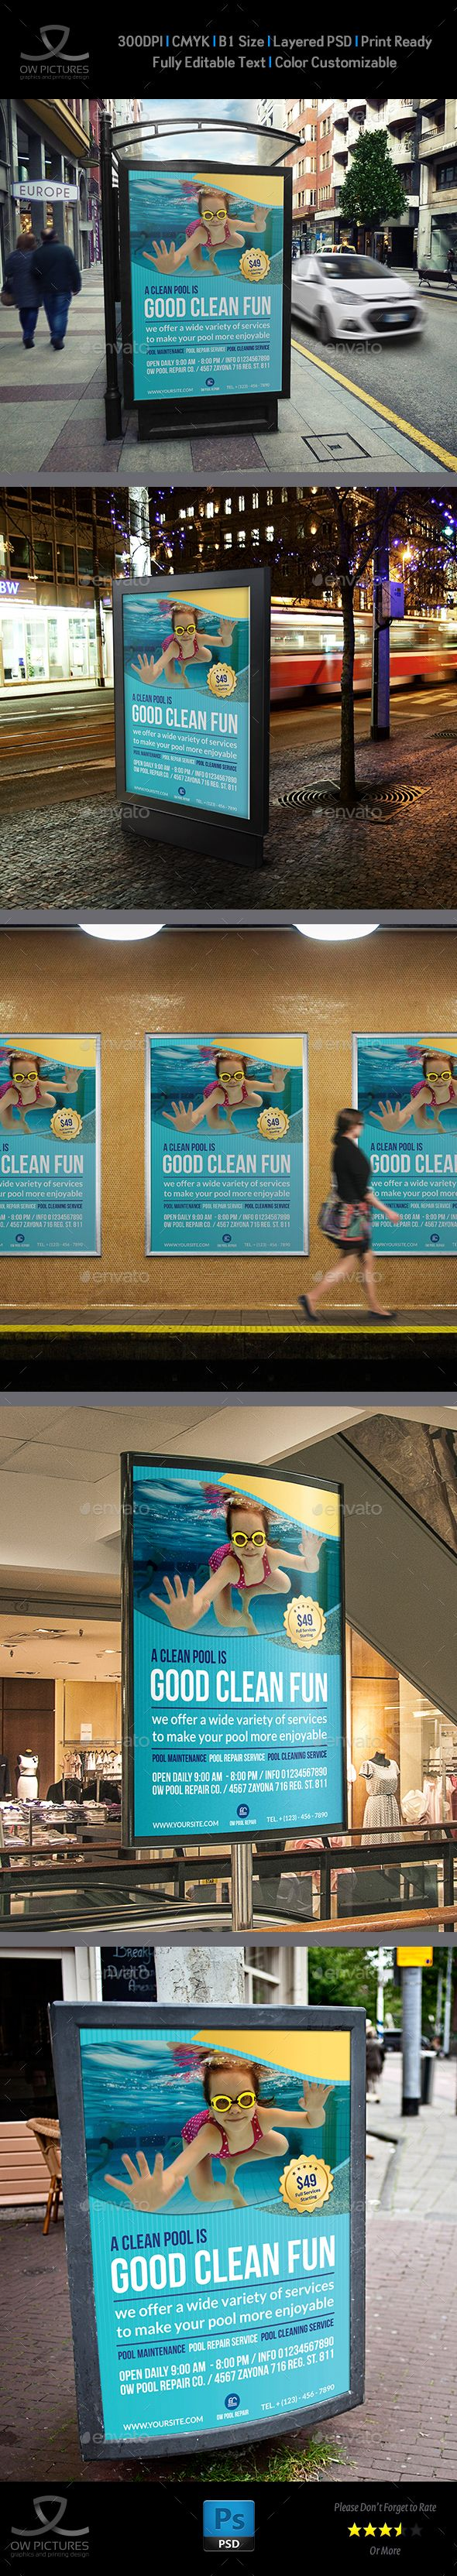 Swimming Pool Cleaning Service Poster Template